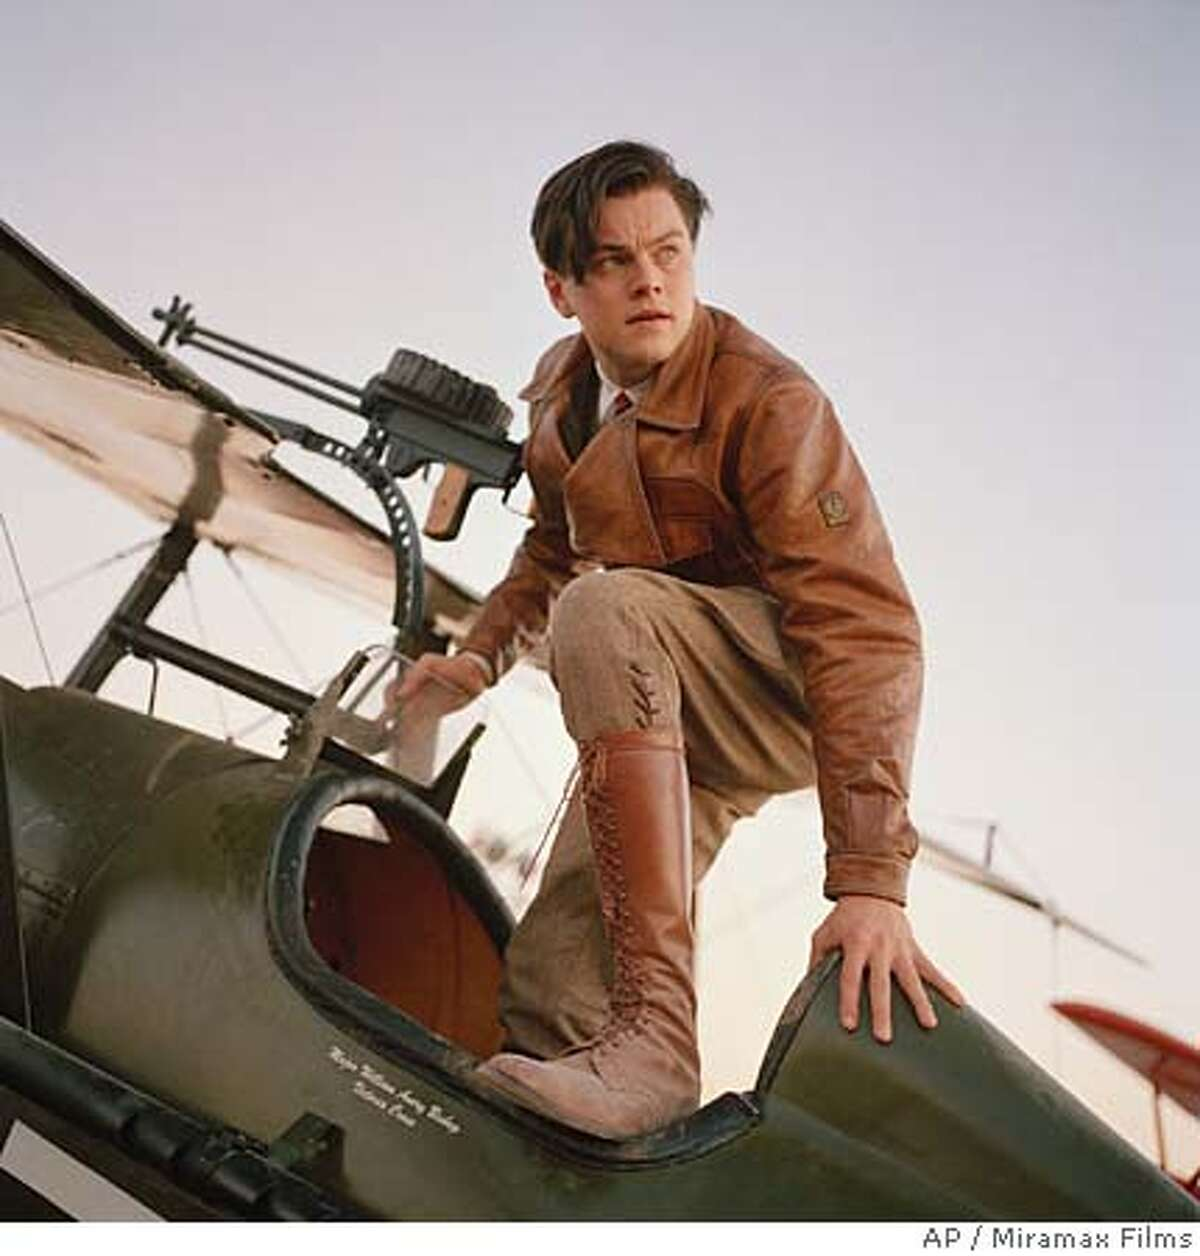 In this undated promotional photo provided by Miramax, actor Leonardo DiCaprio portrays Howard Hughes in a scene from Martin Scorsese's